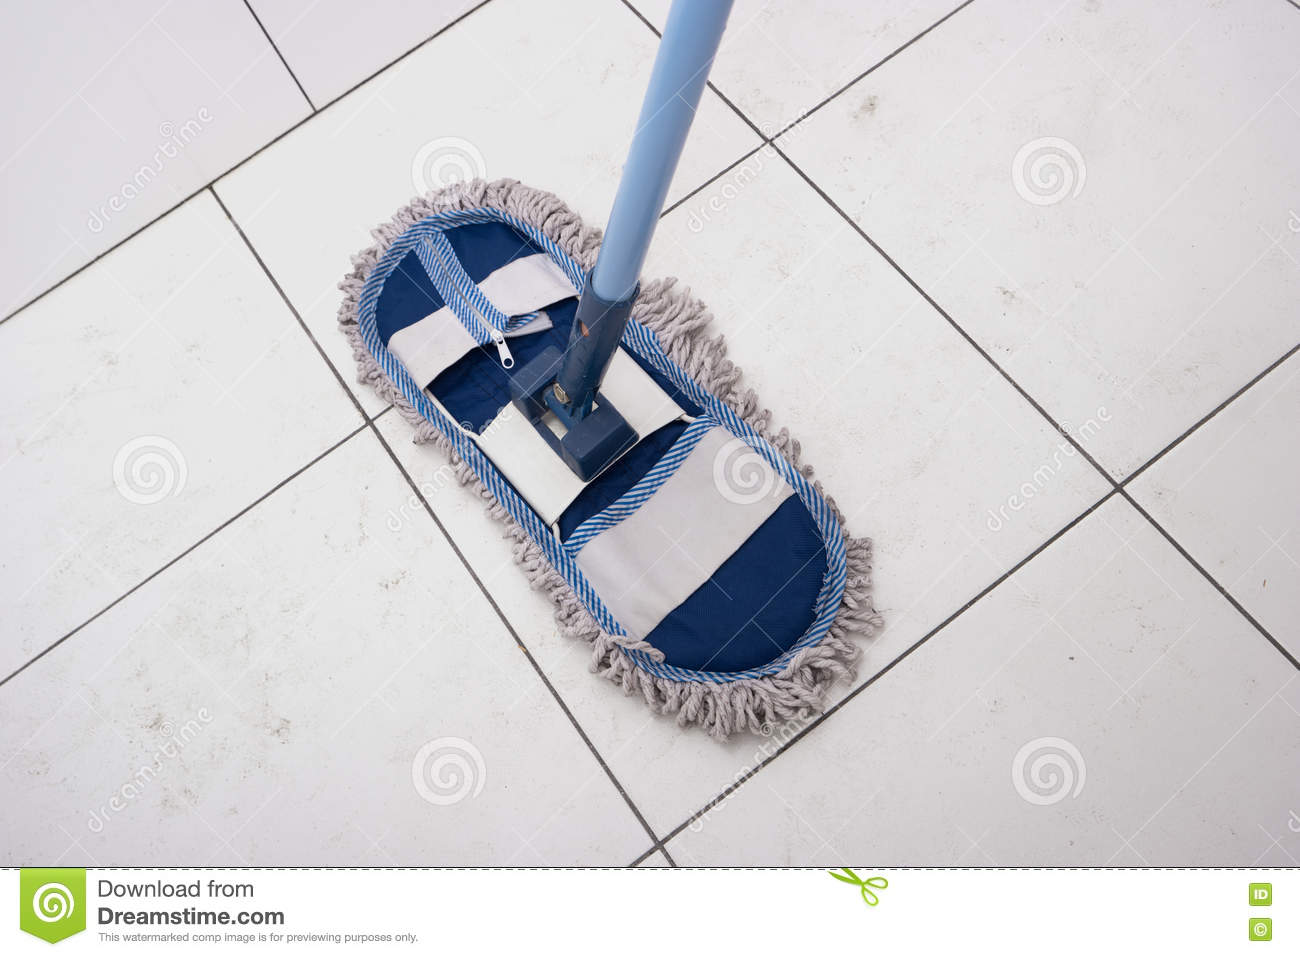 Wet Mop On The Dirty White Tiles. Stock Image - Image of cleaner ...